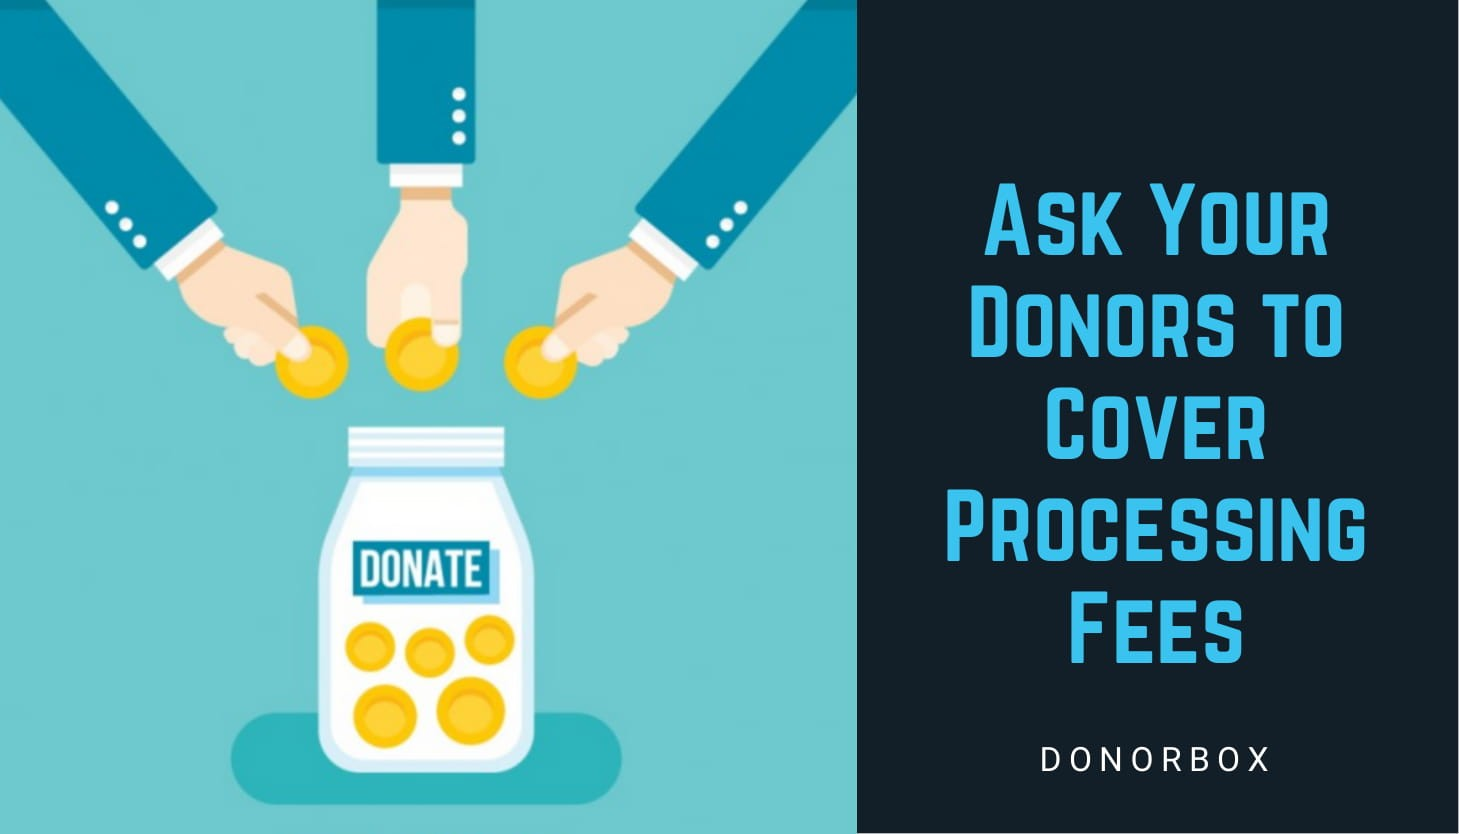 Ask Your Donors to Cover Processing Fees with Donorbox